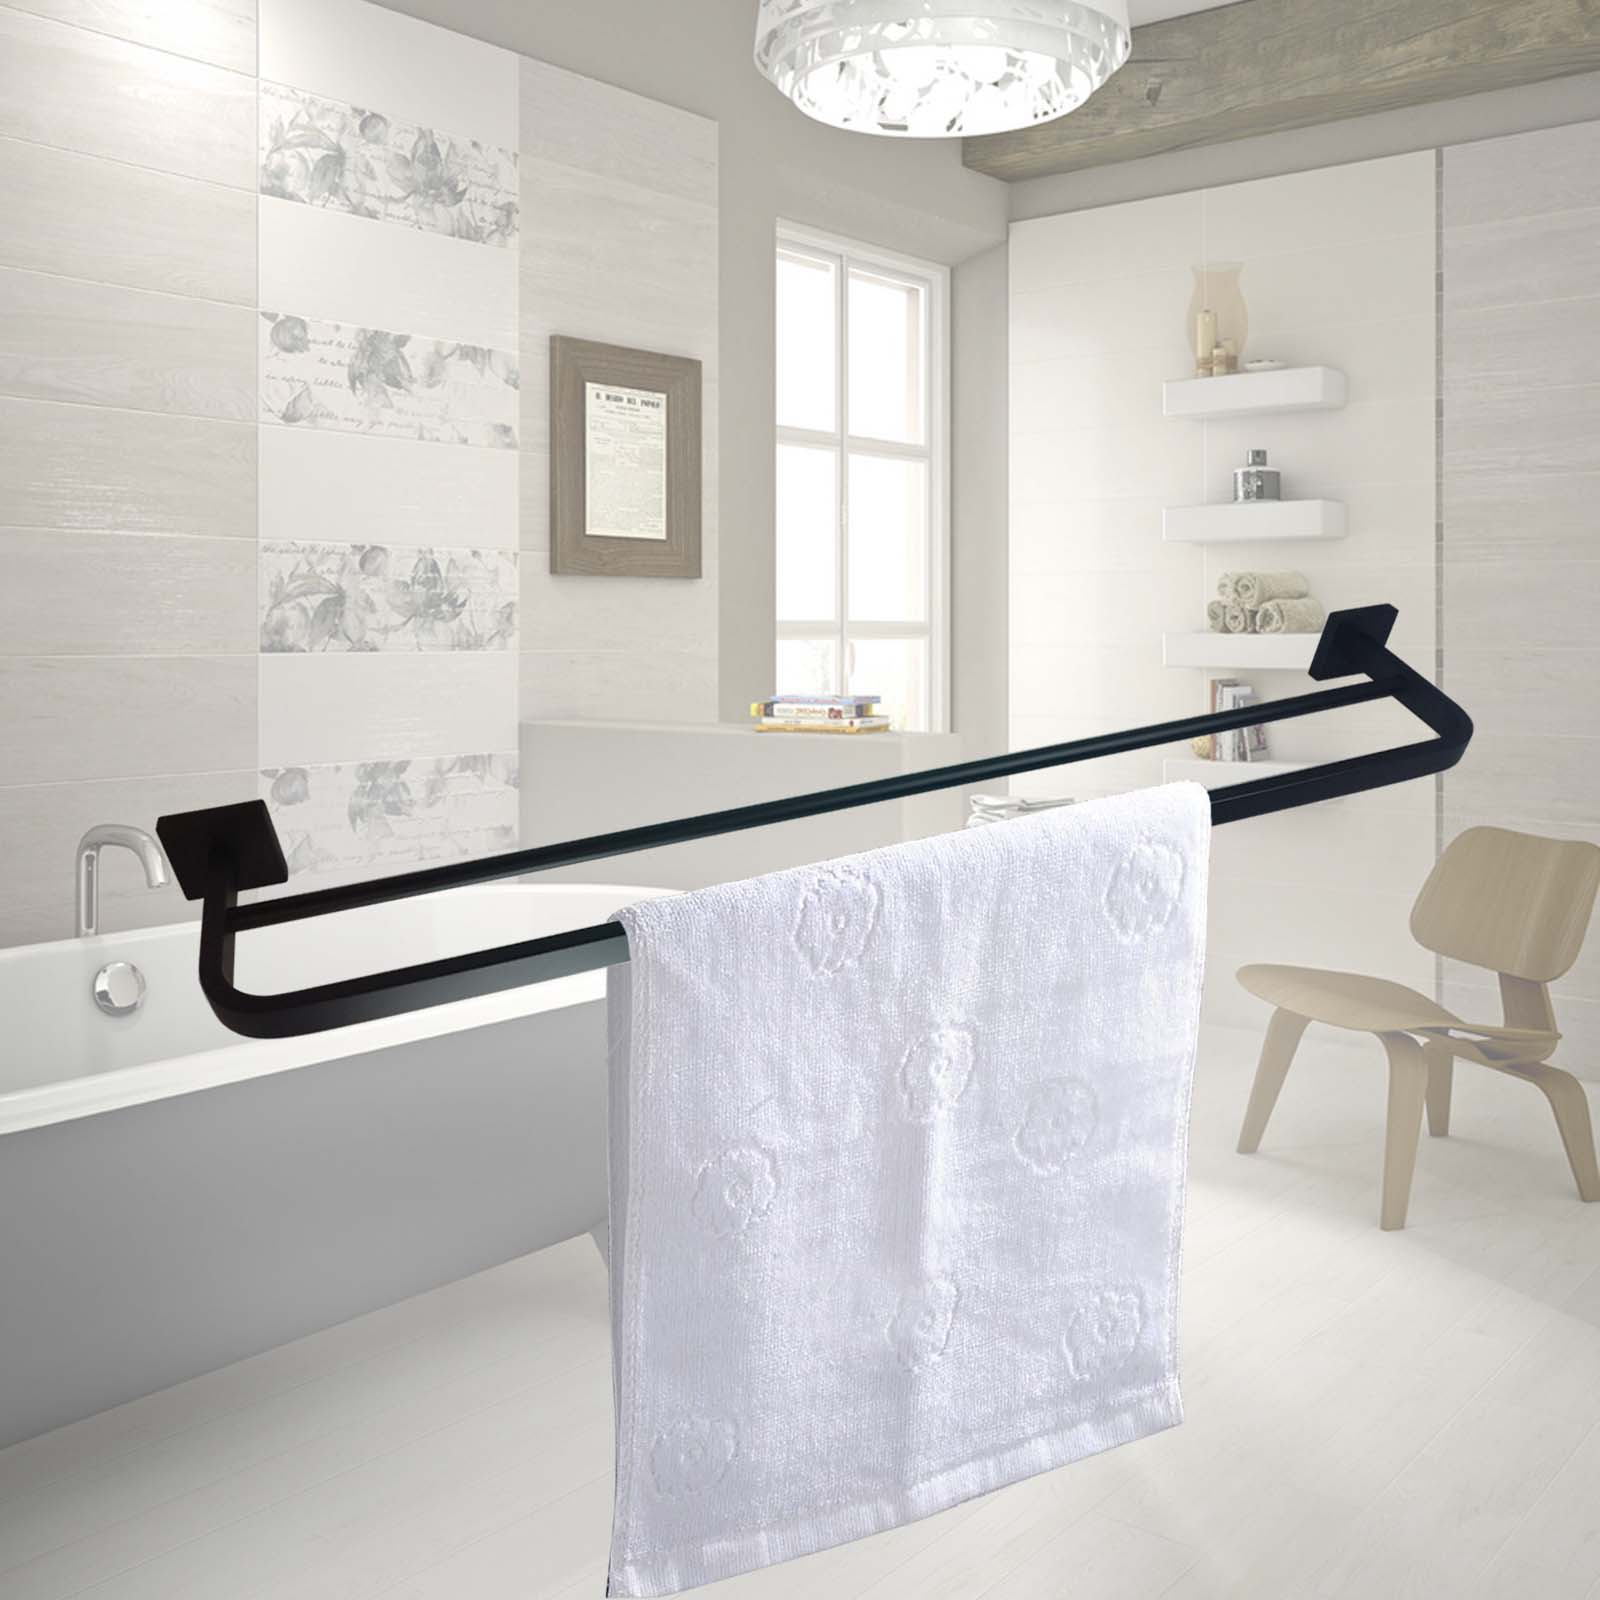 Double towel rack rail black stainless steel 304 wall for Double towel rails for bathrooms